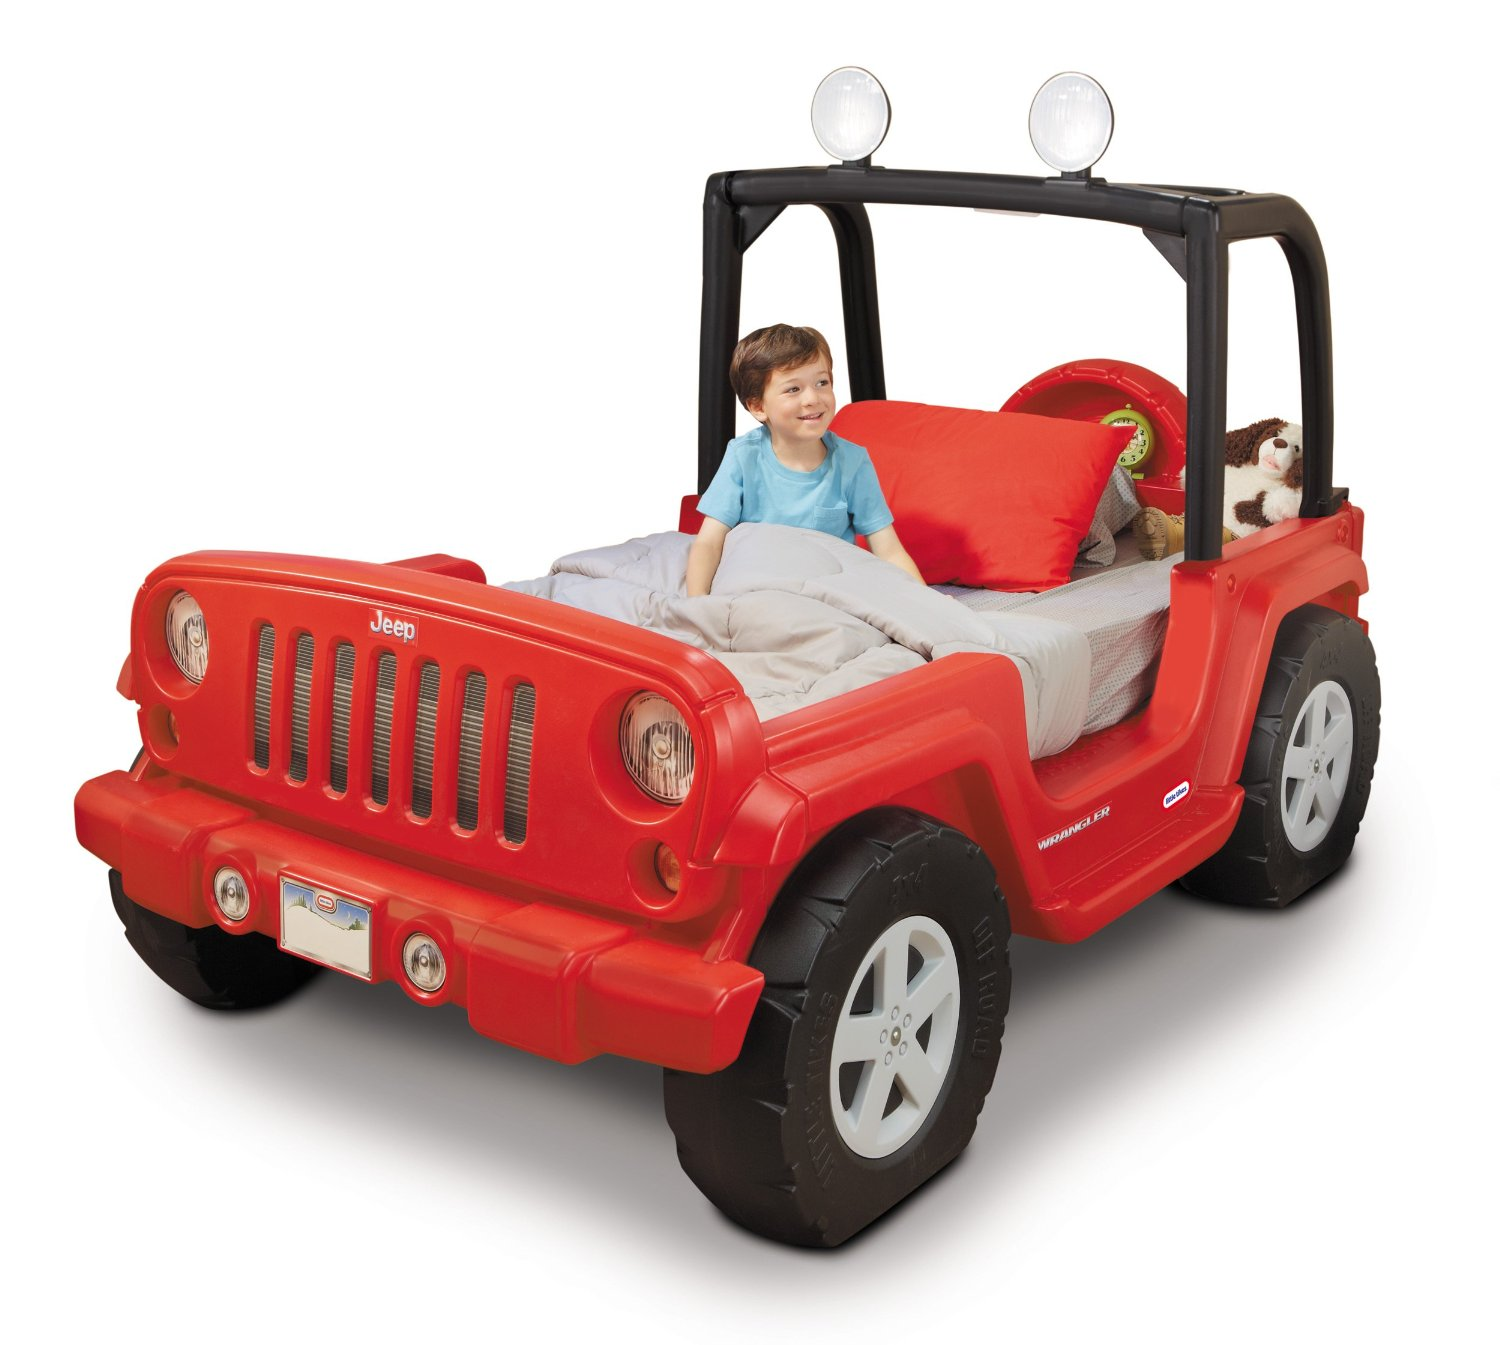 Full Review And Comparison Of The Little Tikes Jeep Wrangler Toddler Twin Bed